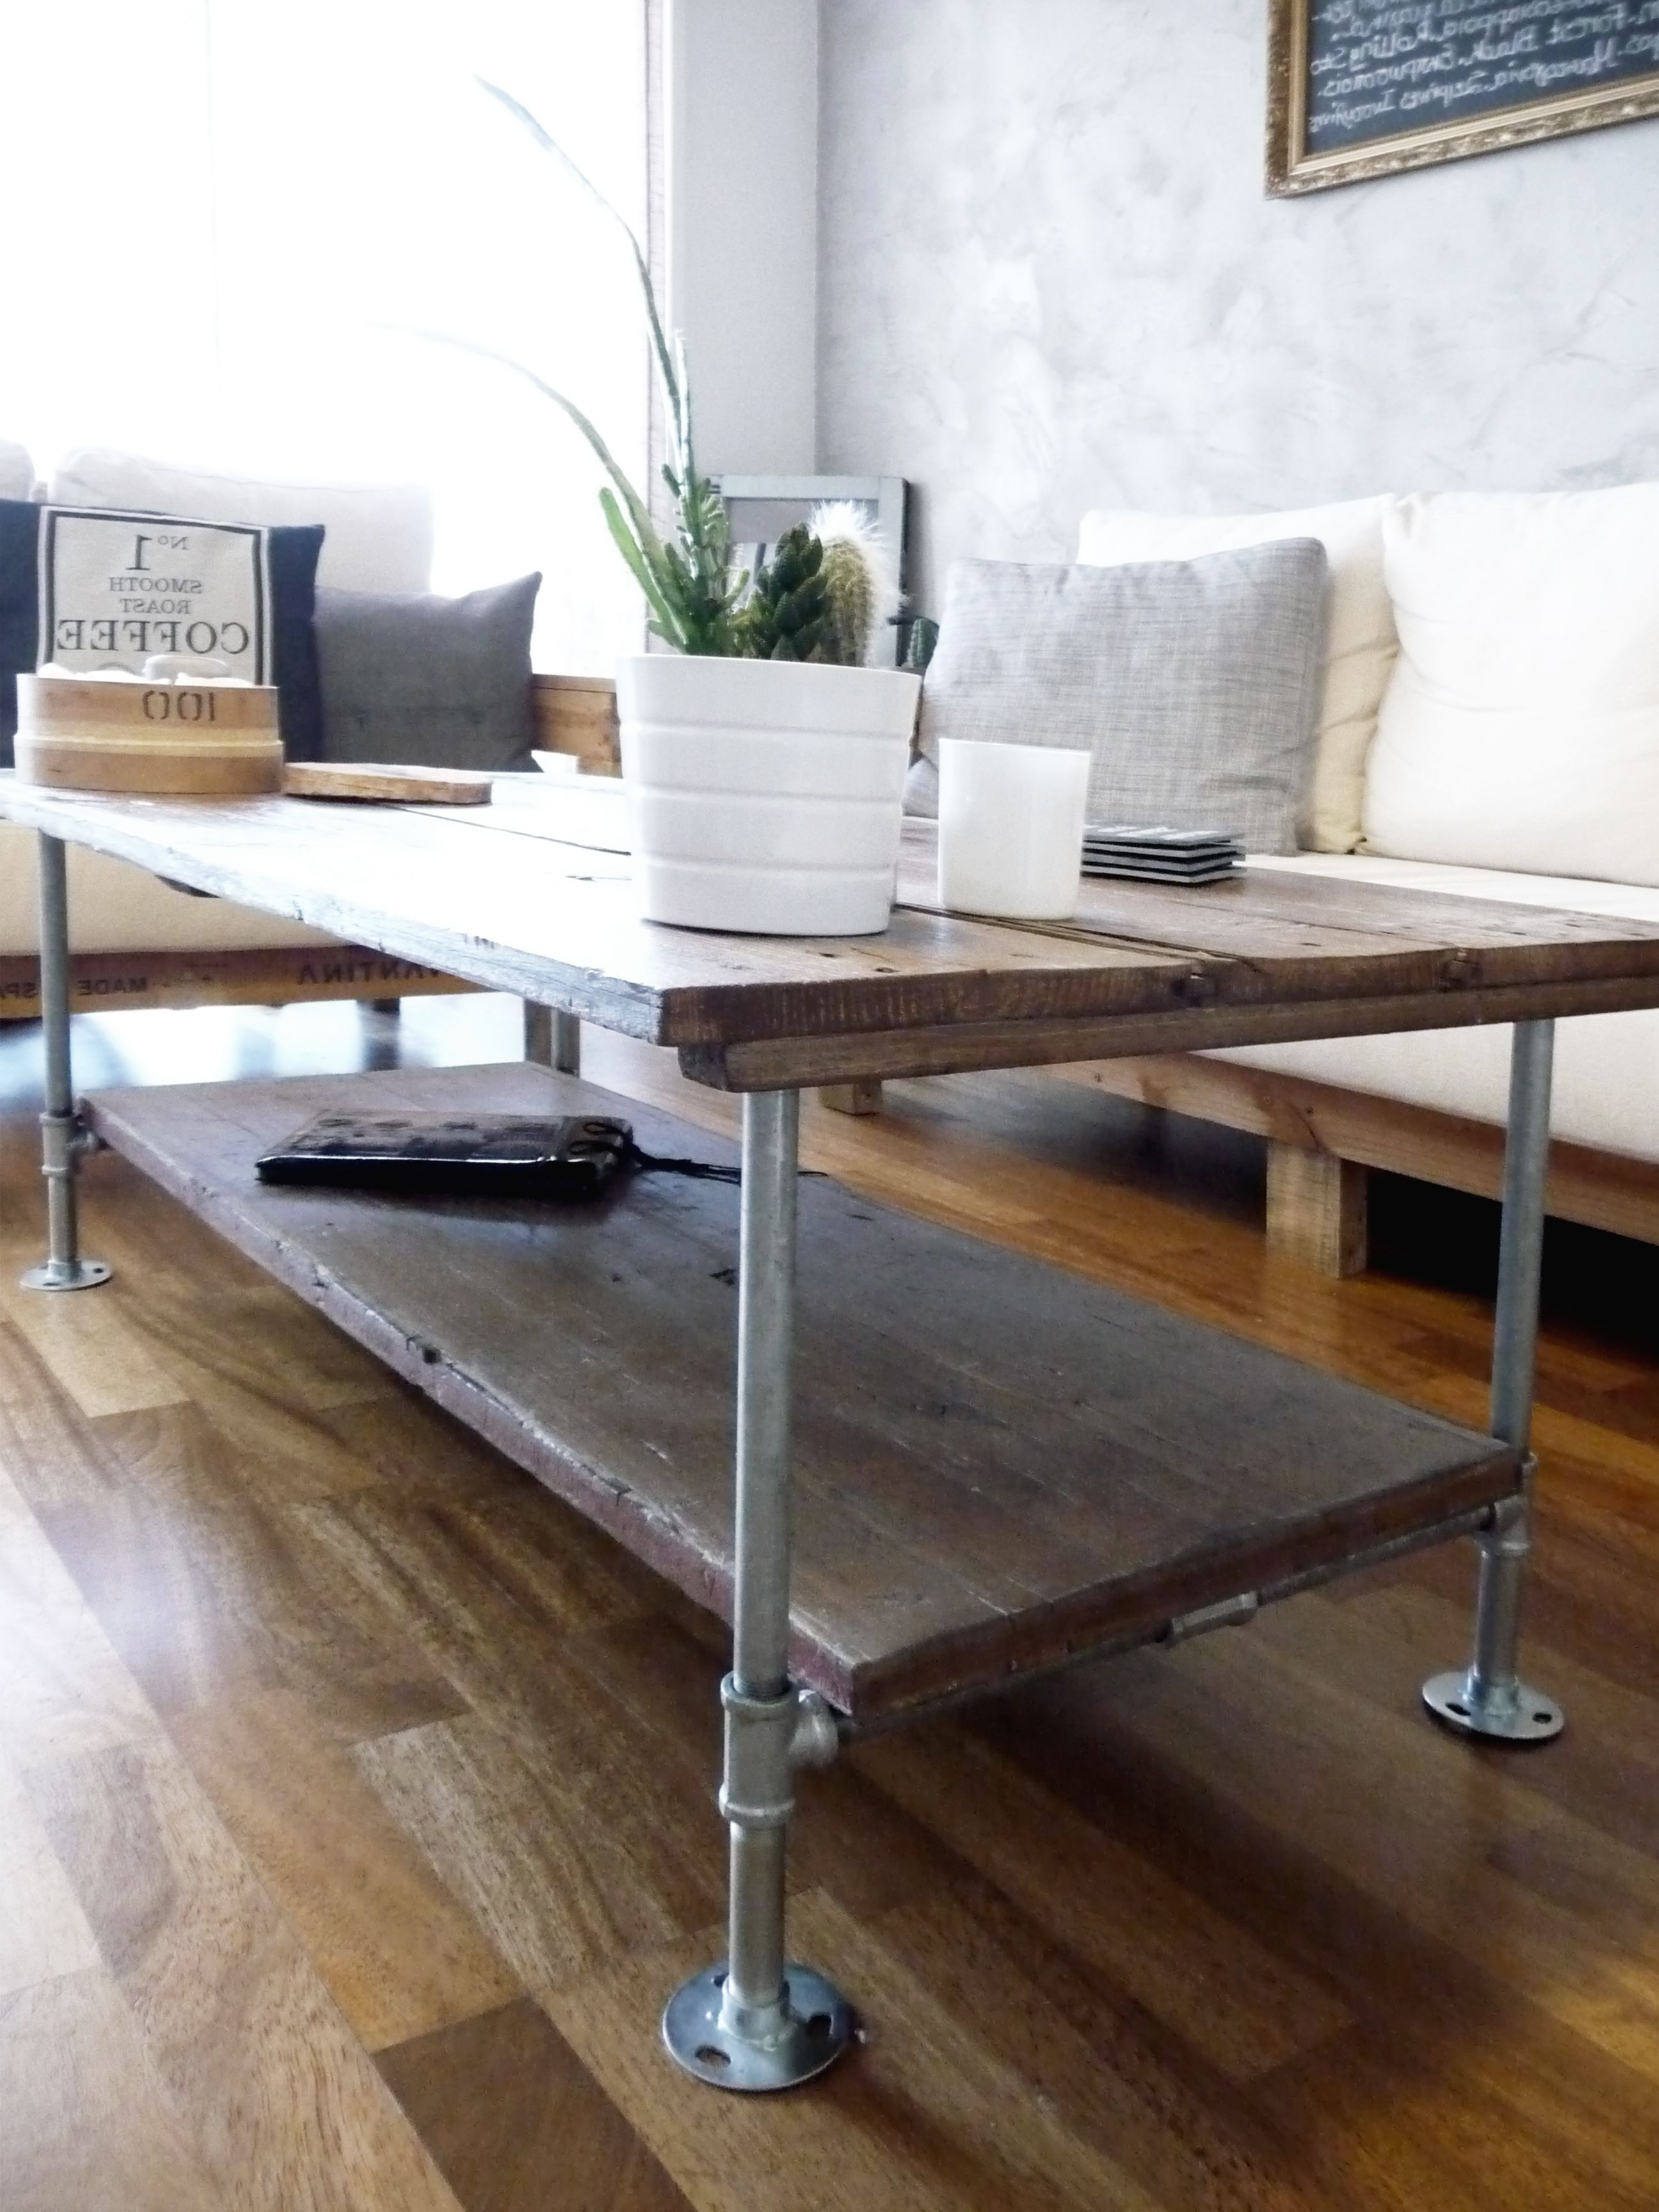 Diy Coffee Table With Wood And Galvanized Steel Pipes Rustic (View 8 of 20)